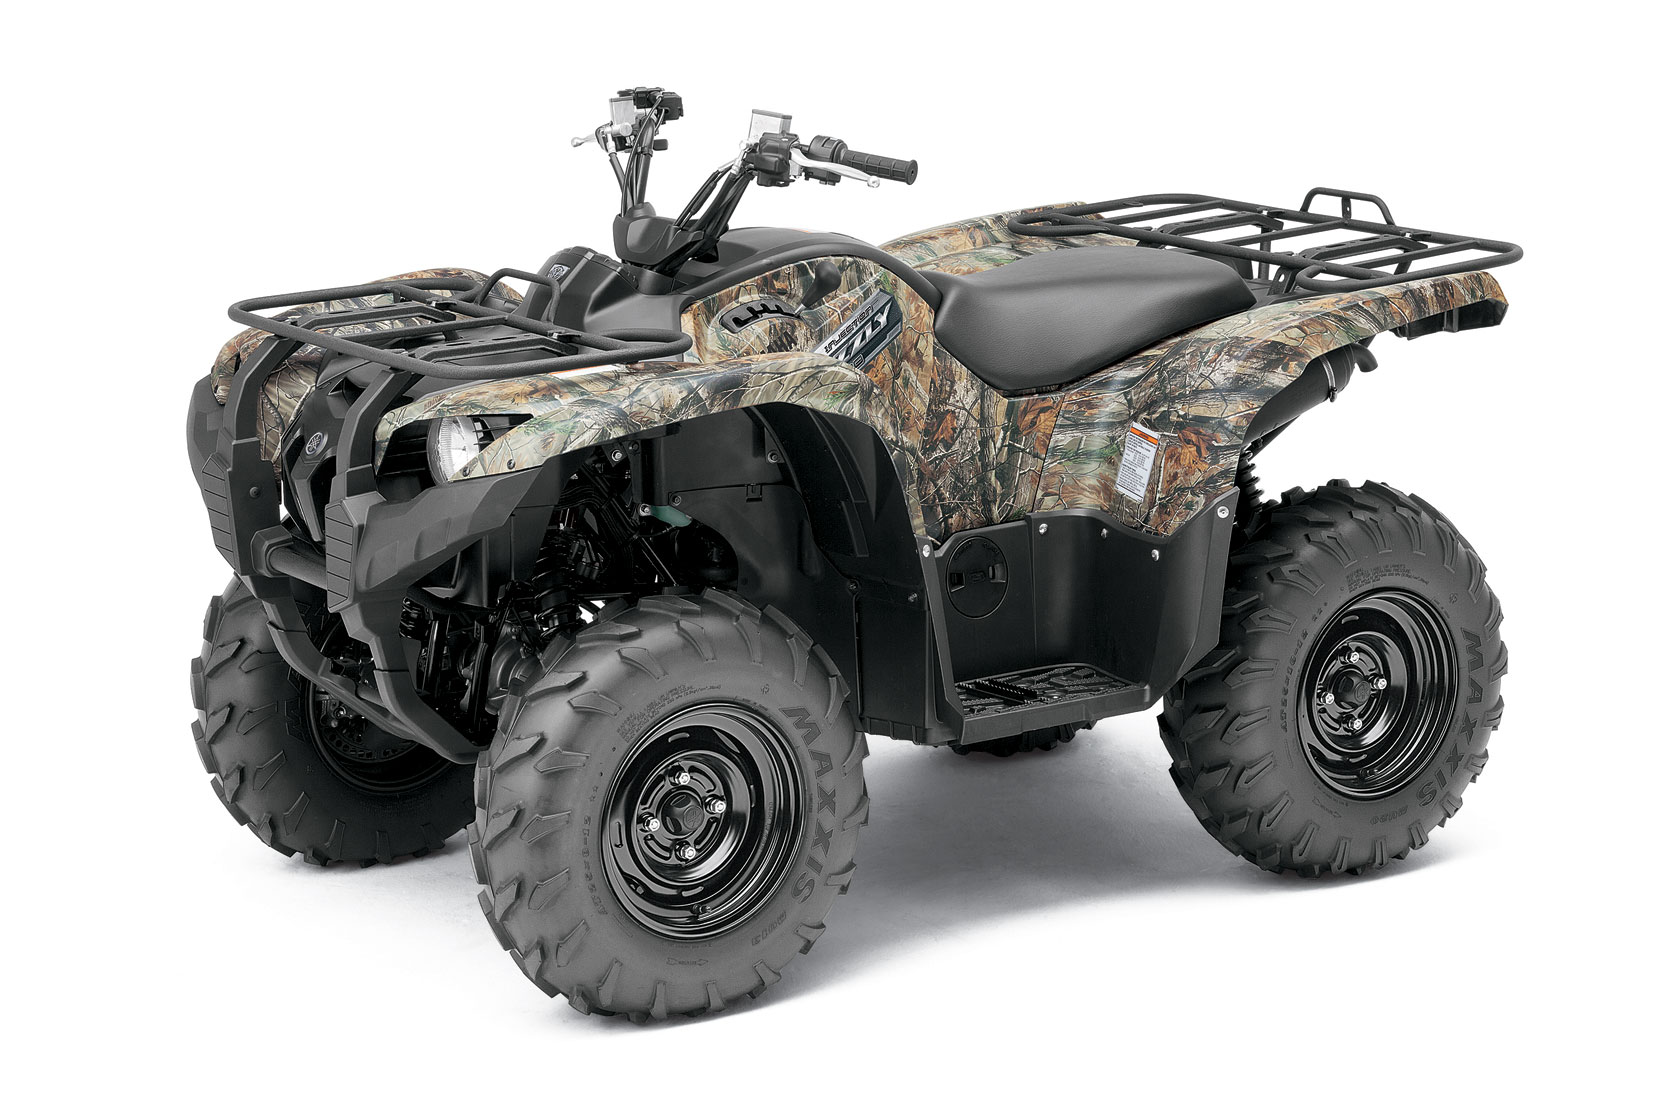 2012 yamaha grizzly 700 fi auto 4x4 review. Black Bedroom Furniture Sets. Home Design Ideas